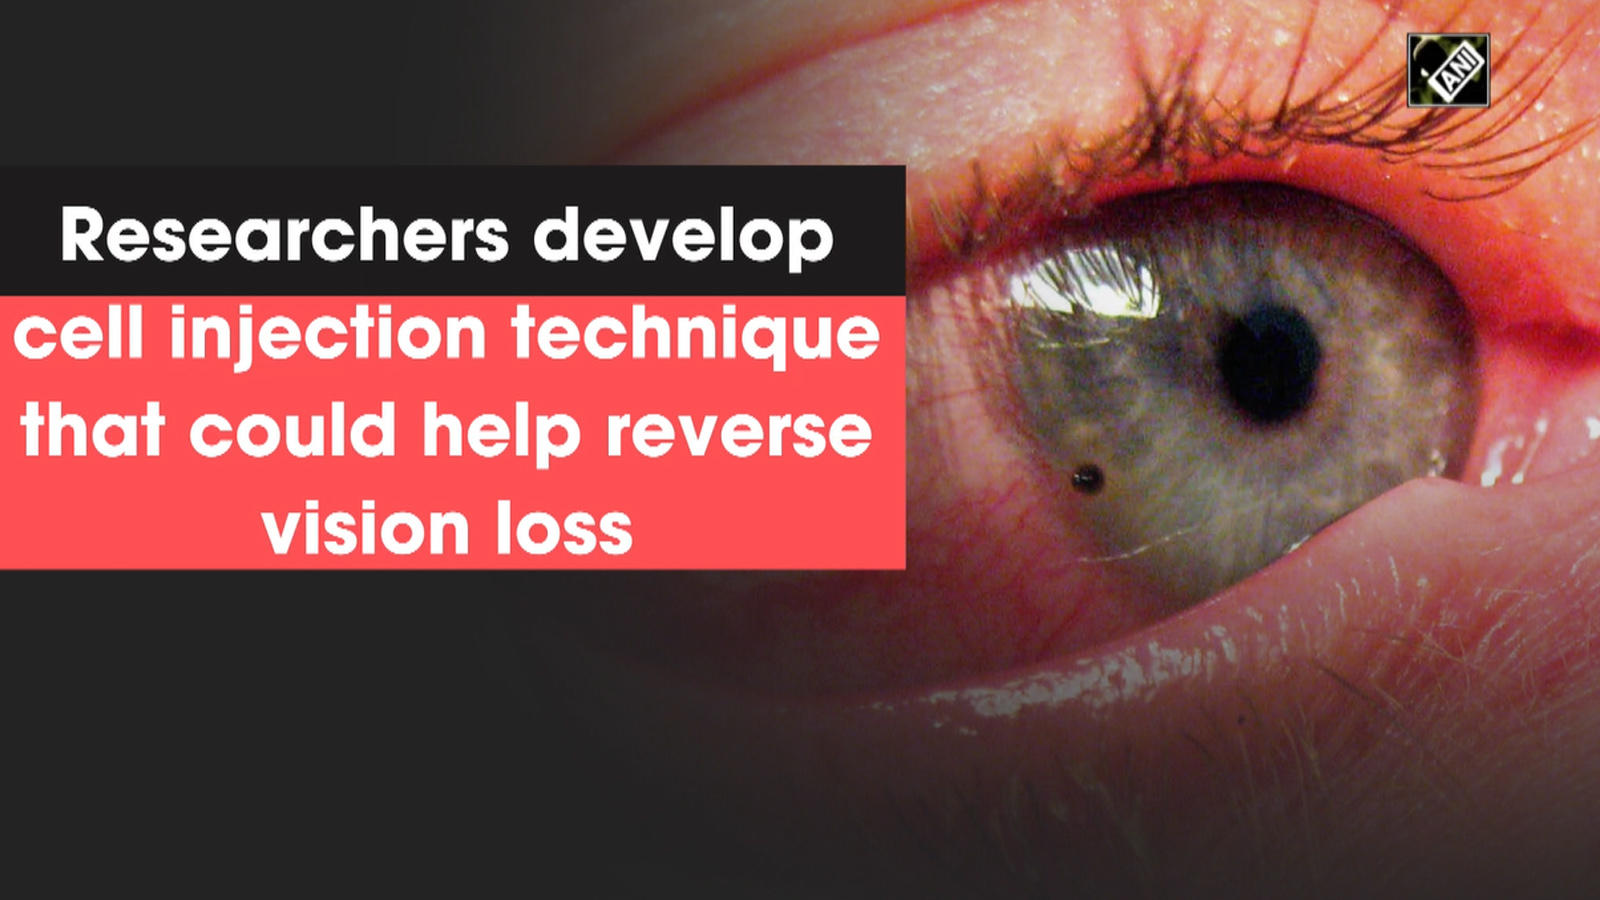 researchers-develop-cell-injection-technique-that-could-help-reverse-vision-loss